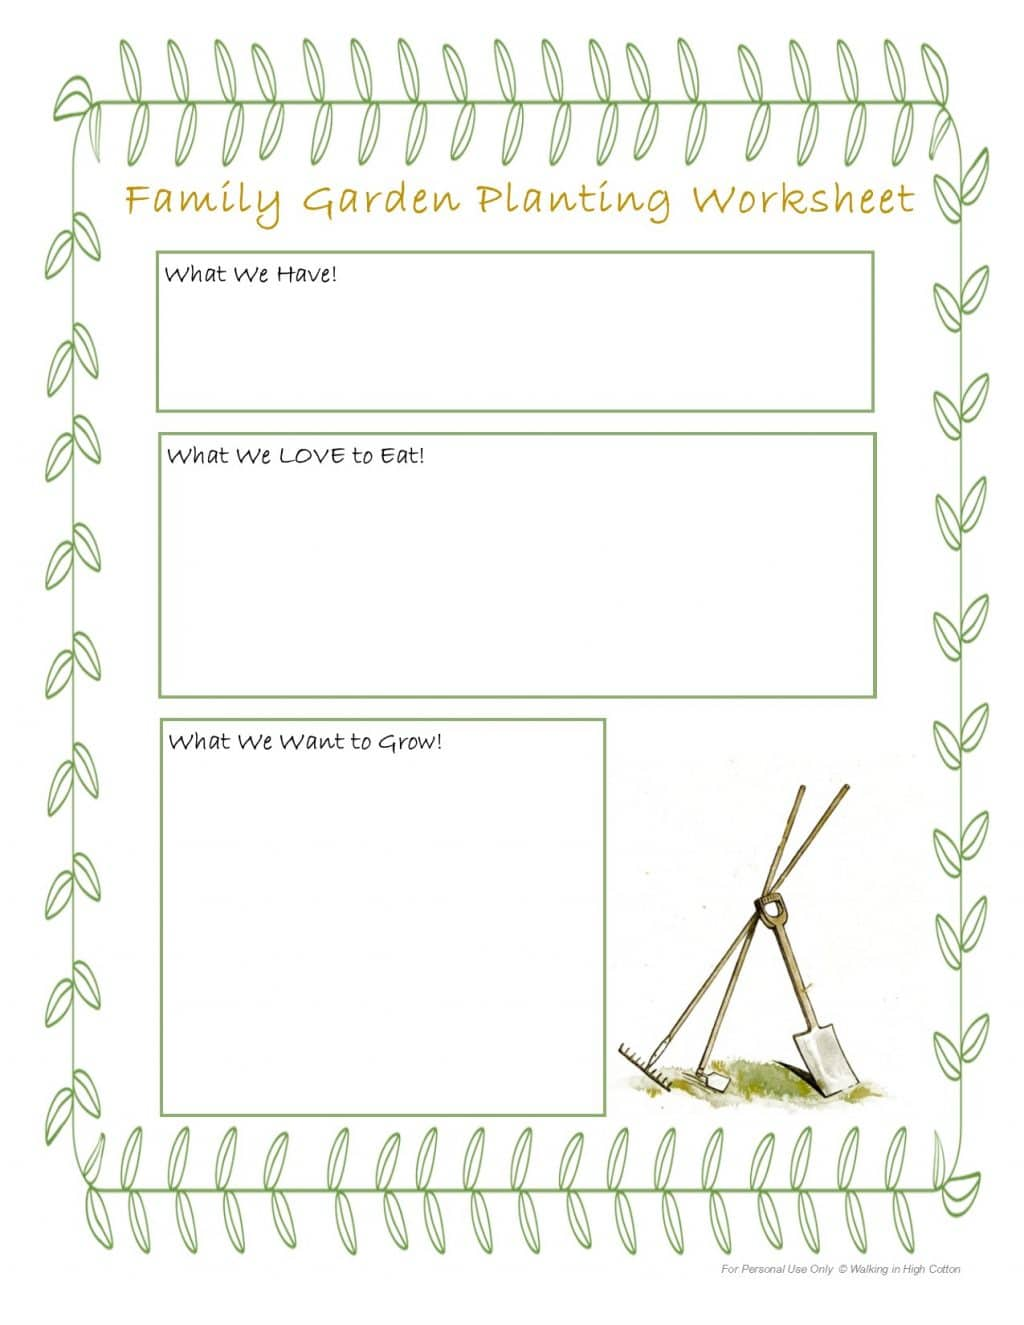 Free Family Gardening Planting Worksheet